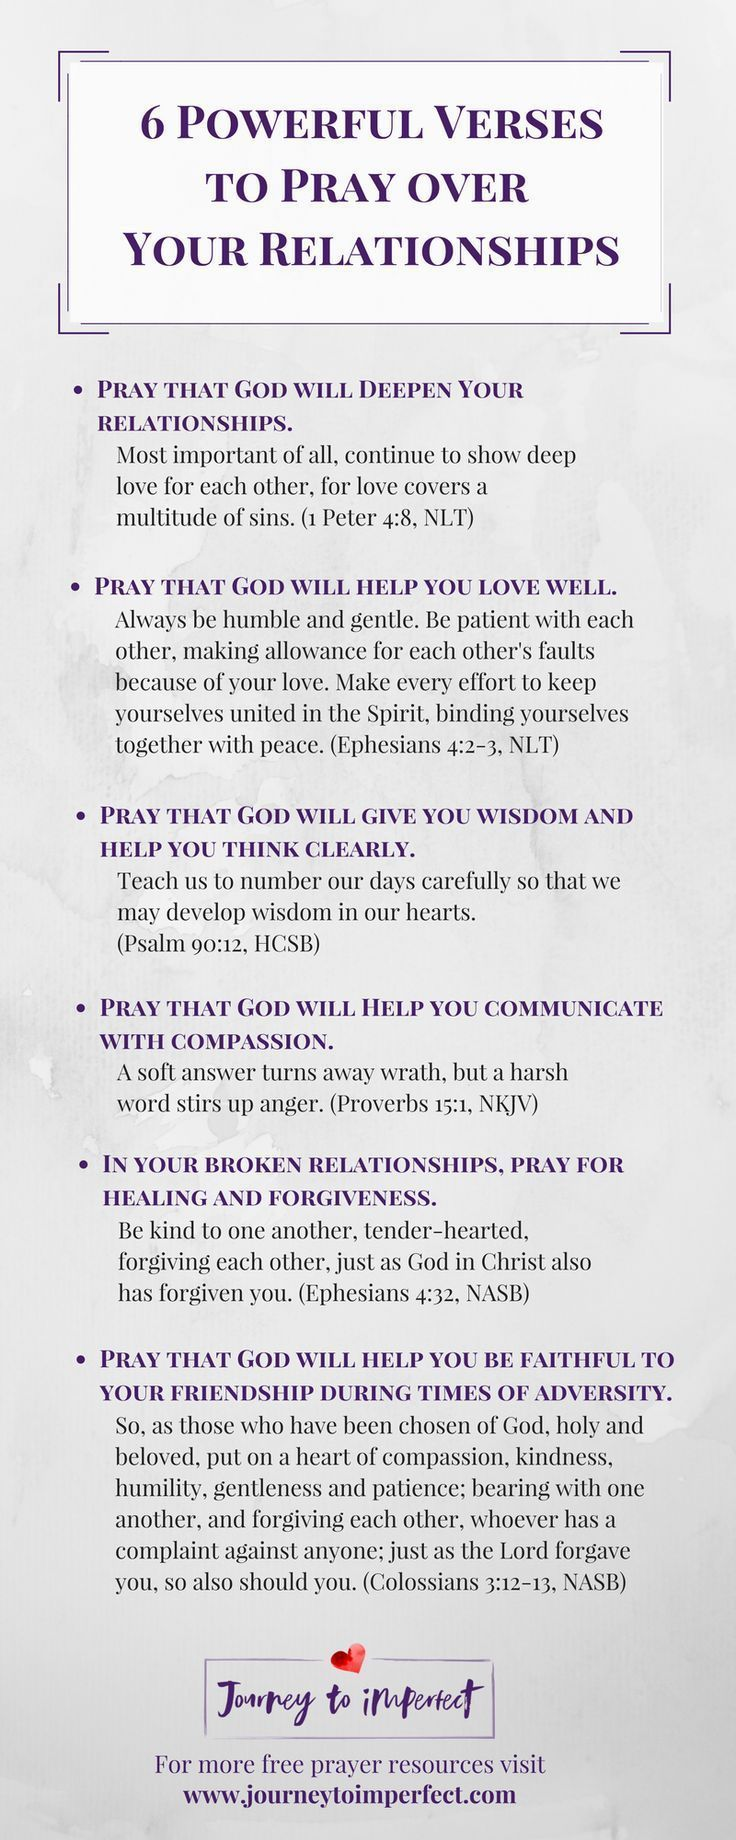 Prayer changes things, especially when it comes to relationships! Pray these powerful verses for lasting impact, healing, and renewal from a God who cares!